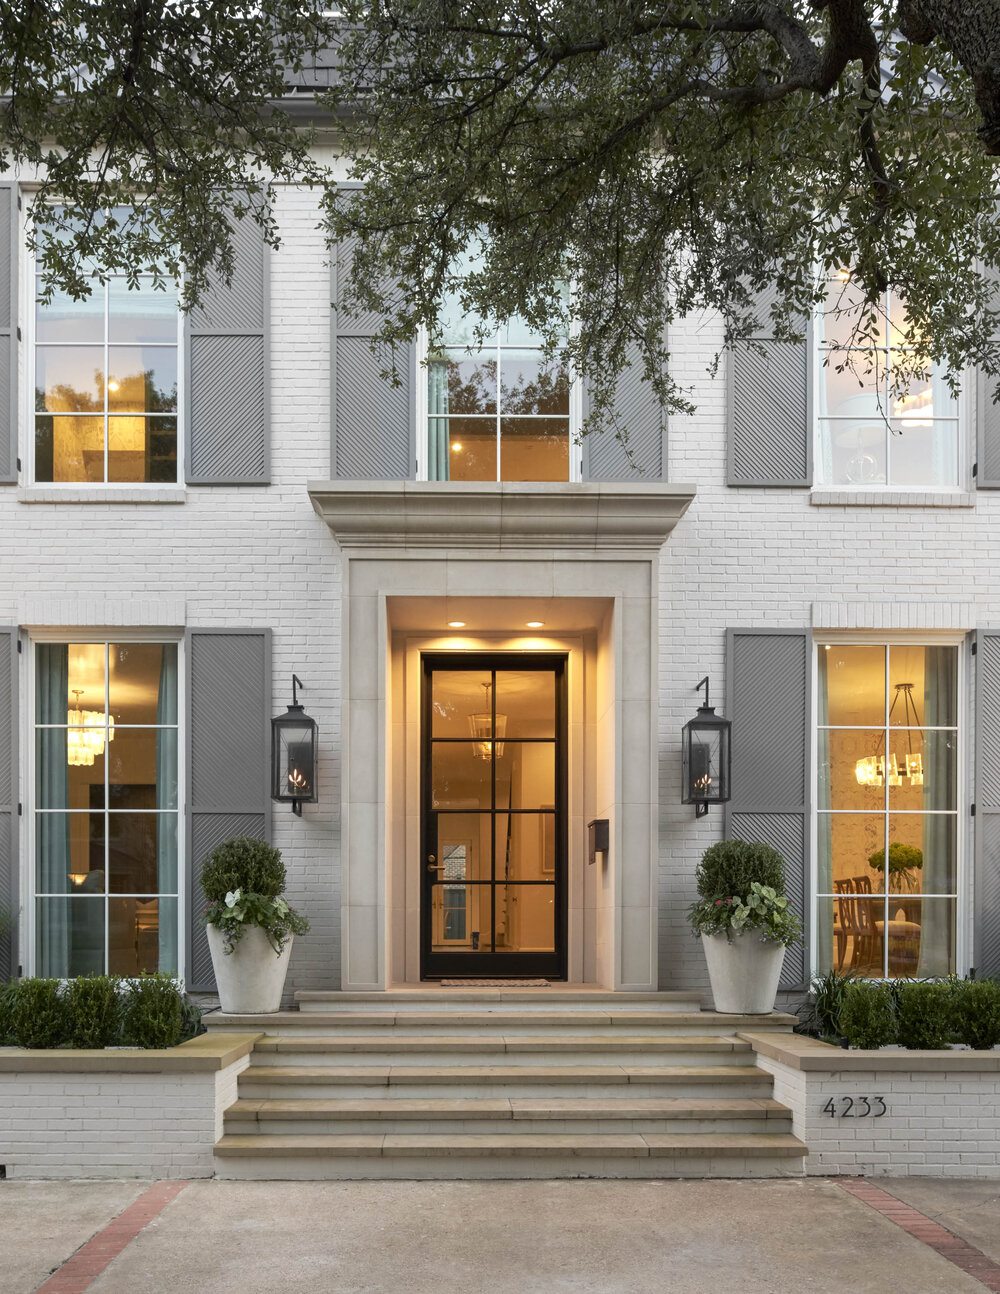 Mary Beth Wagner curb appeal house exterior